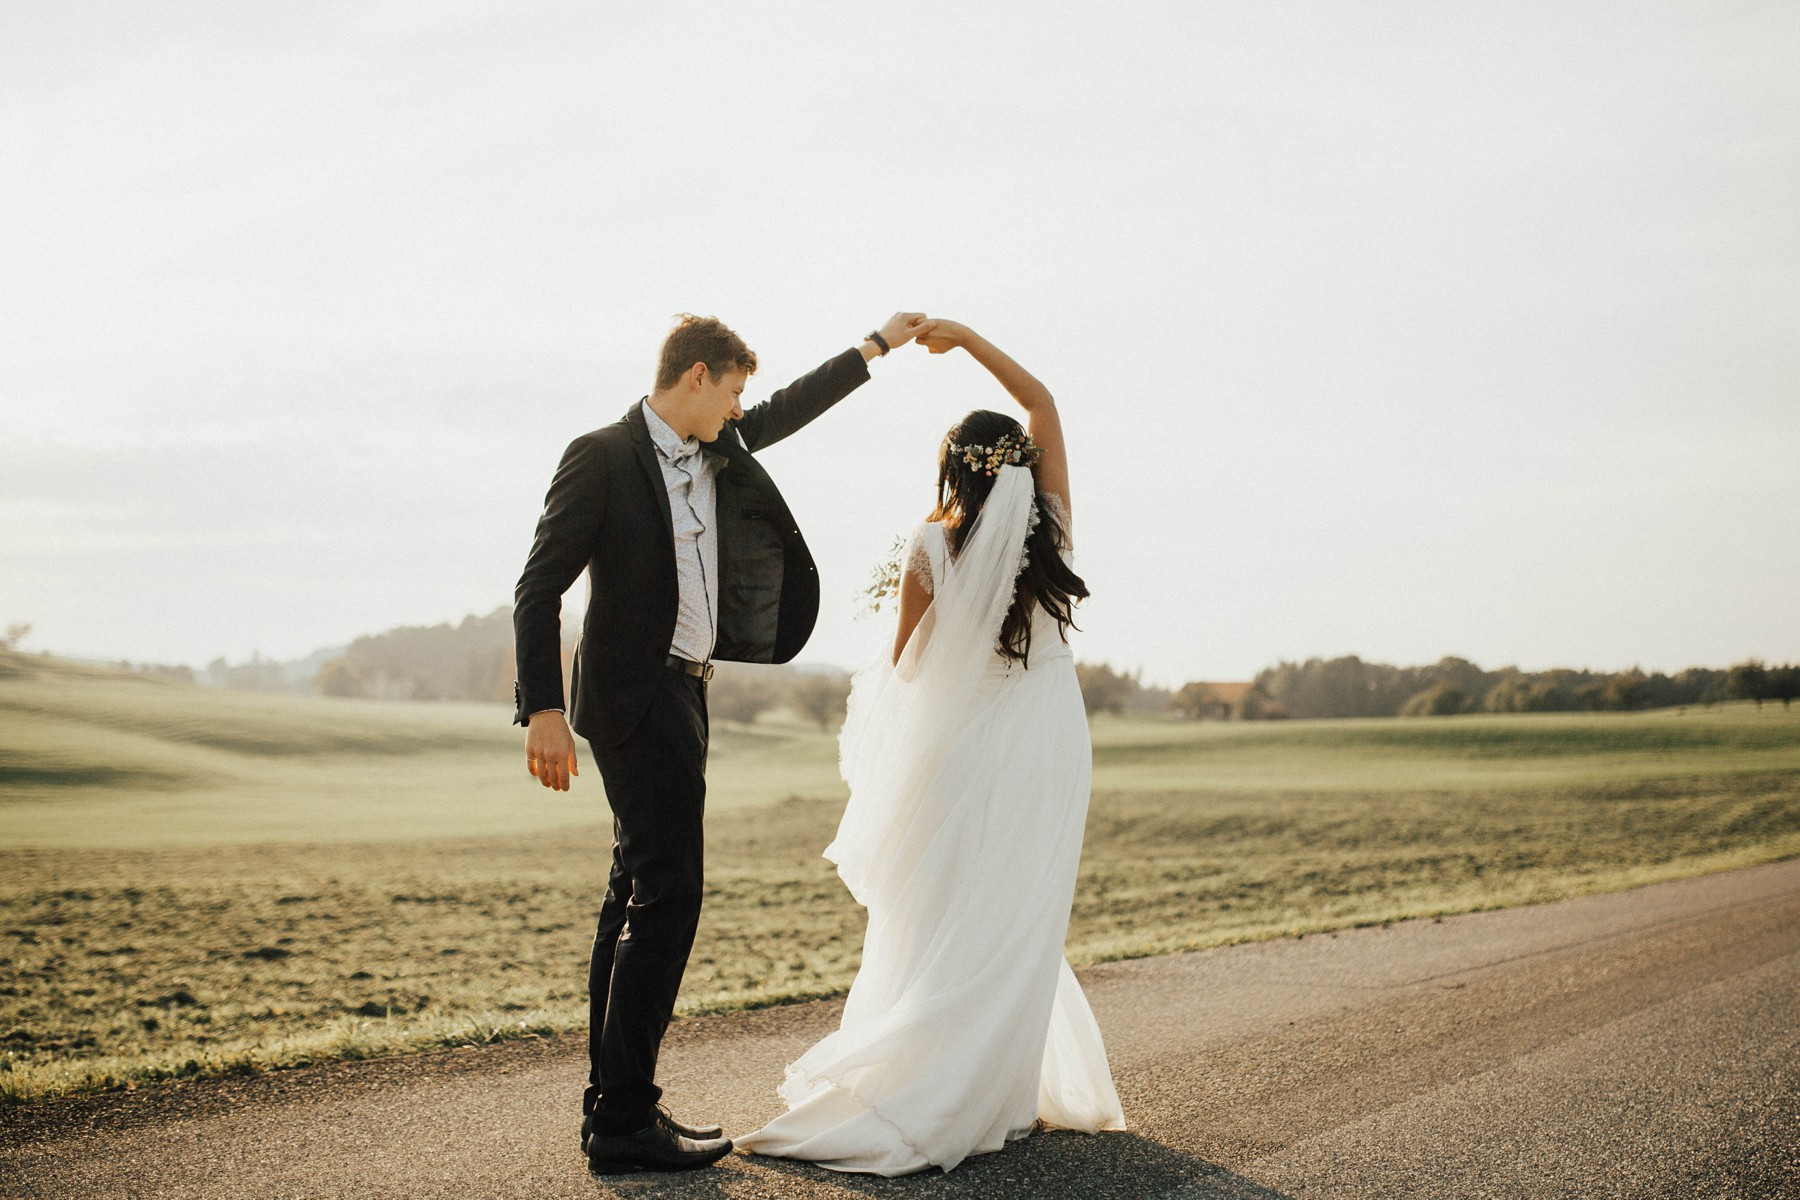 dancing newlyweds in sunset